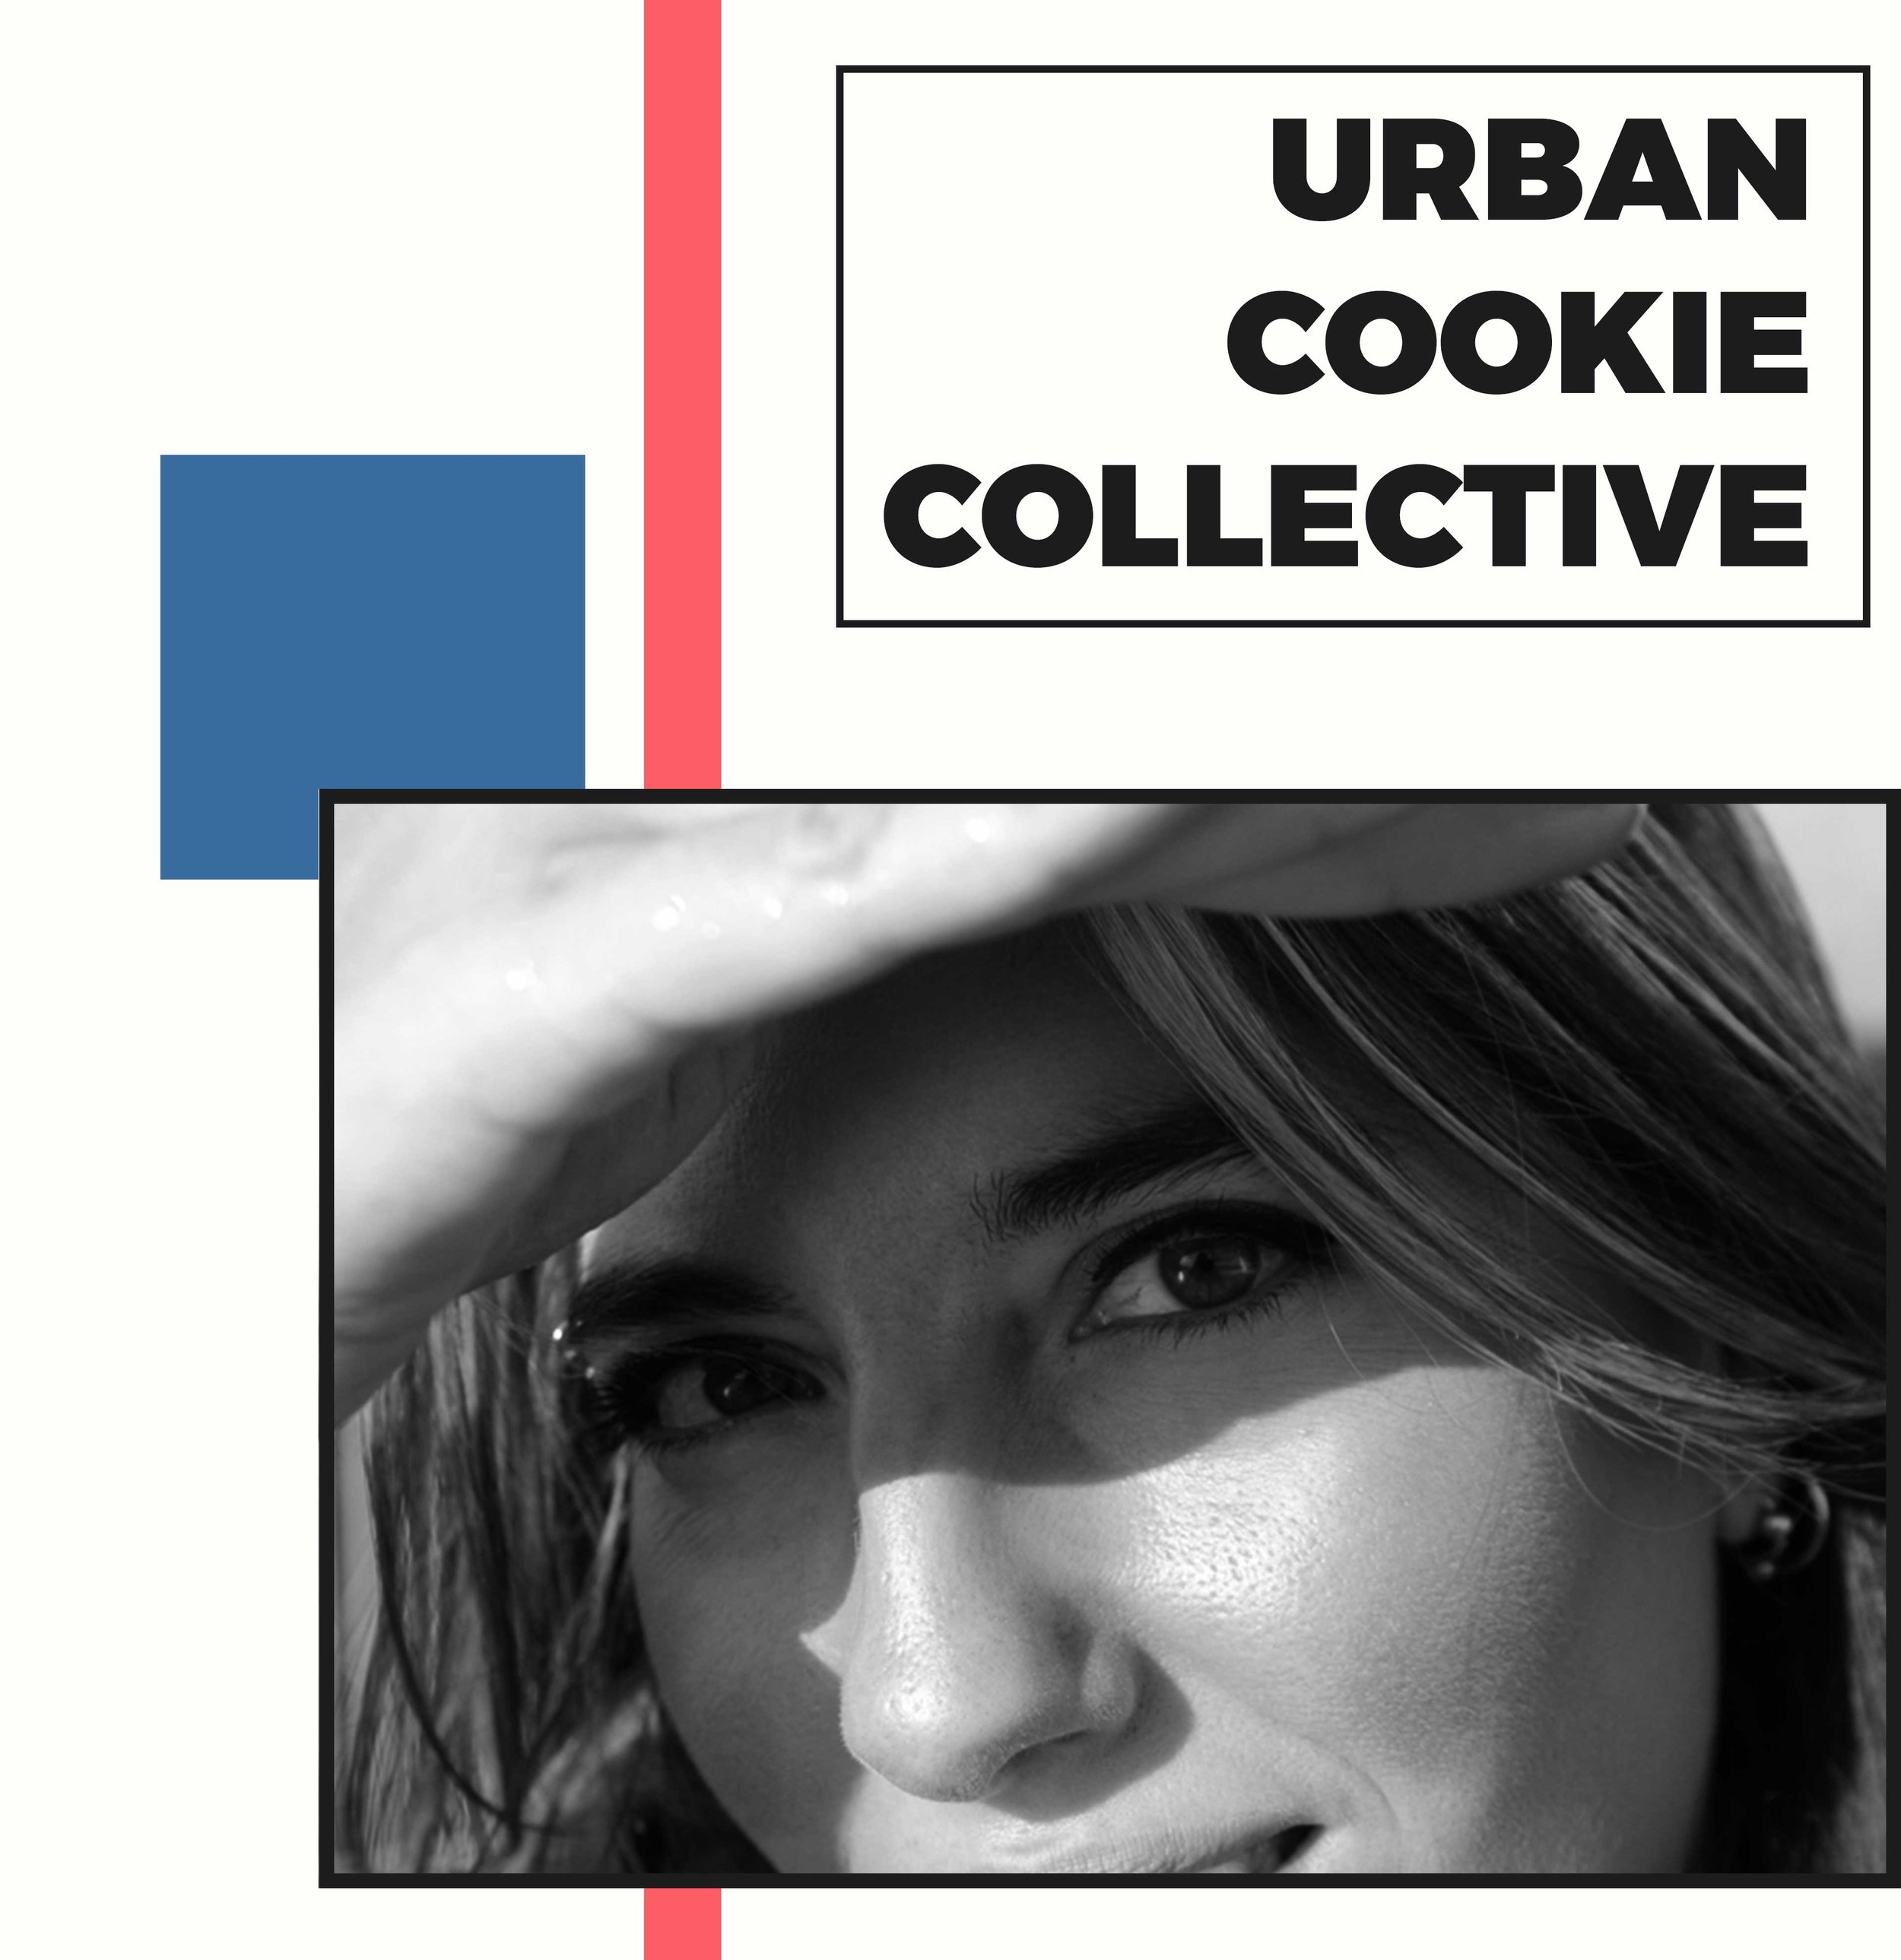 Copy of The Urban Cookie Collective